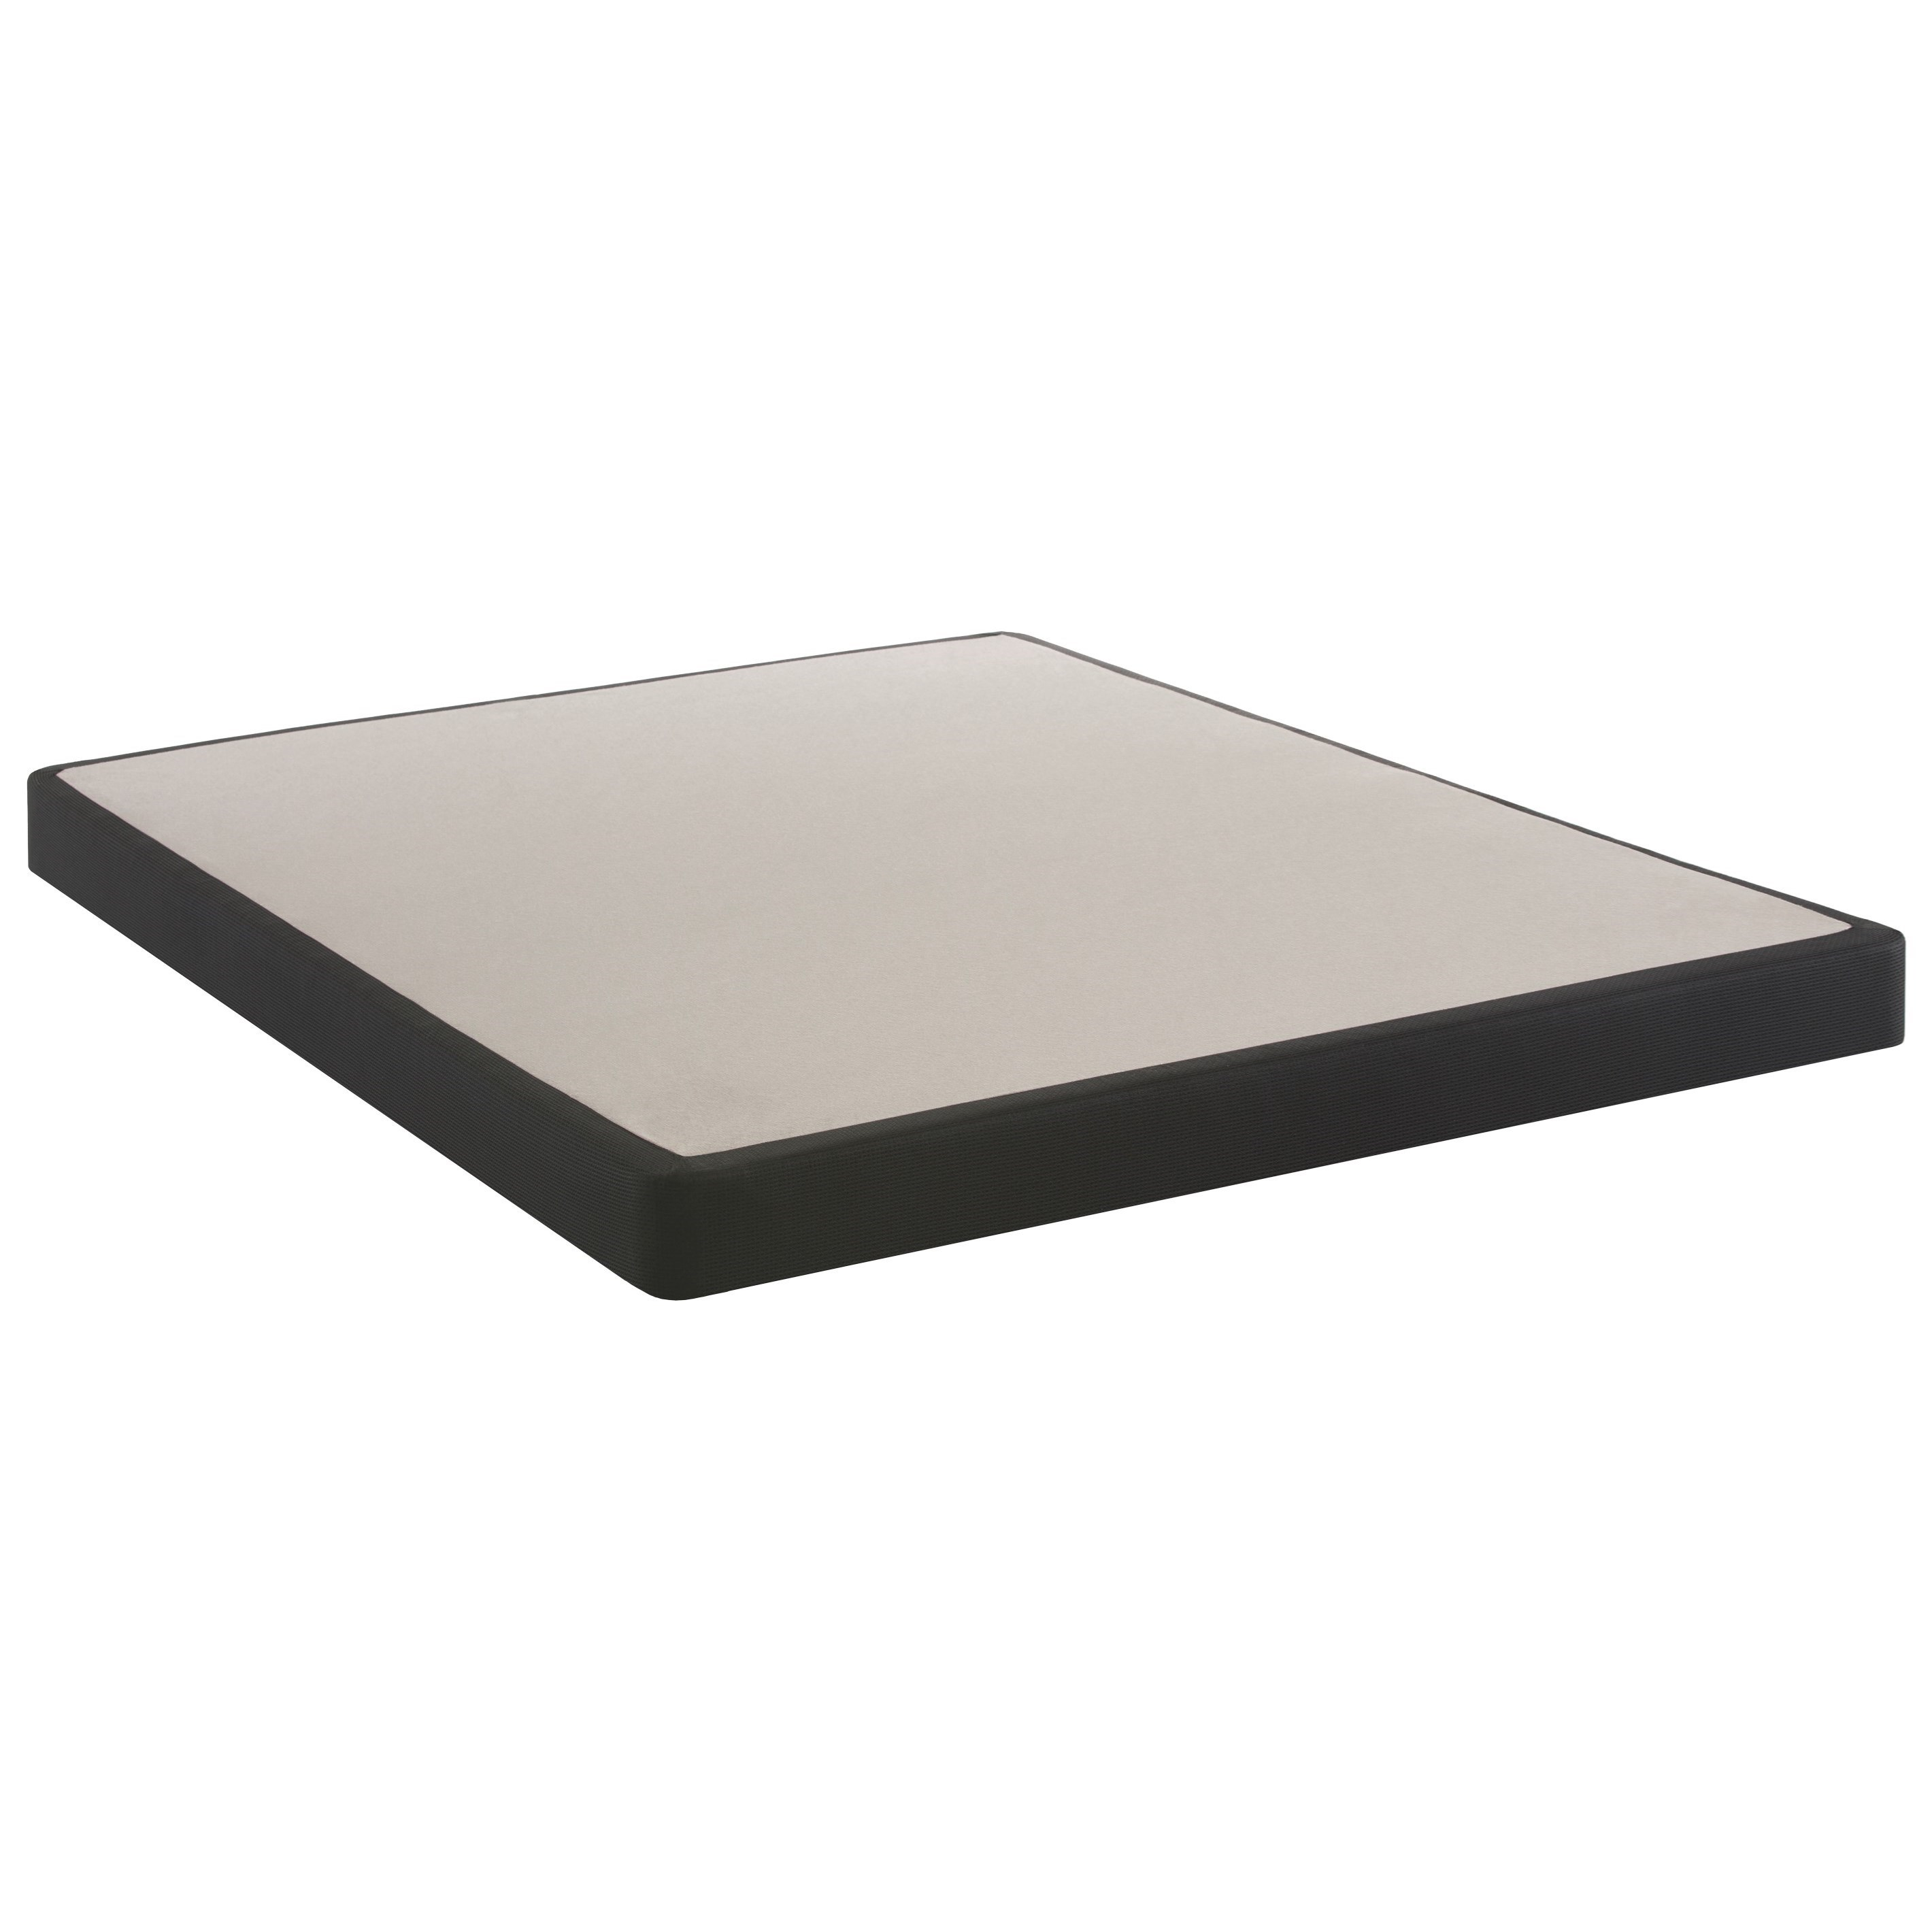 "Foundations Twin XL 5"" Low Profile Foundation by Sealy at Ultimate Mattress"